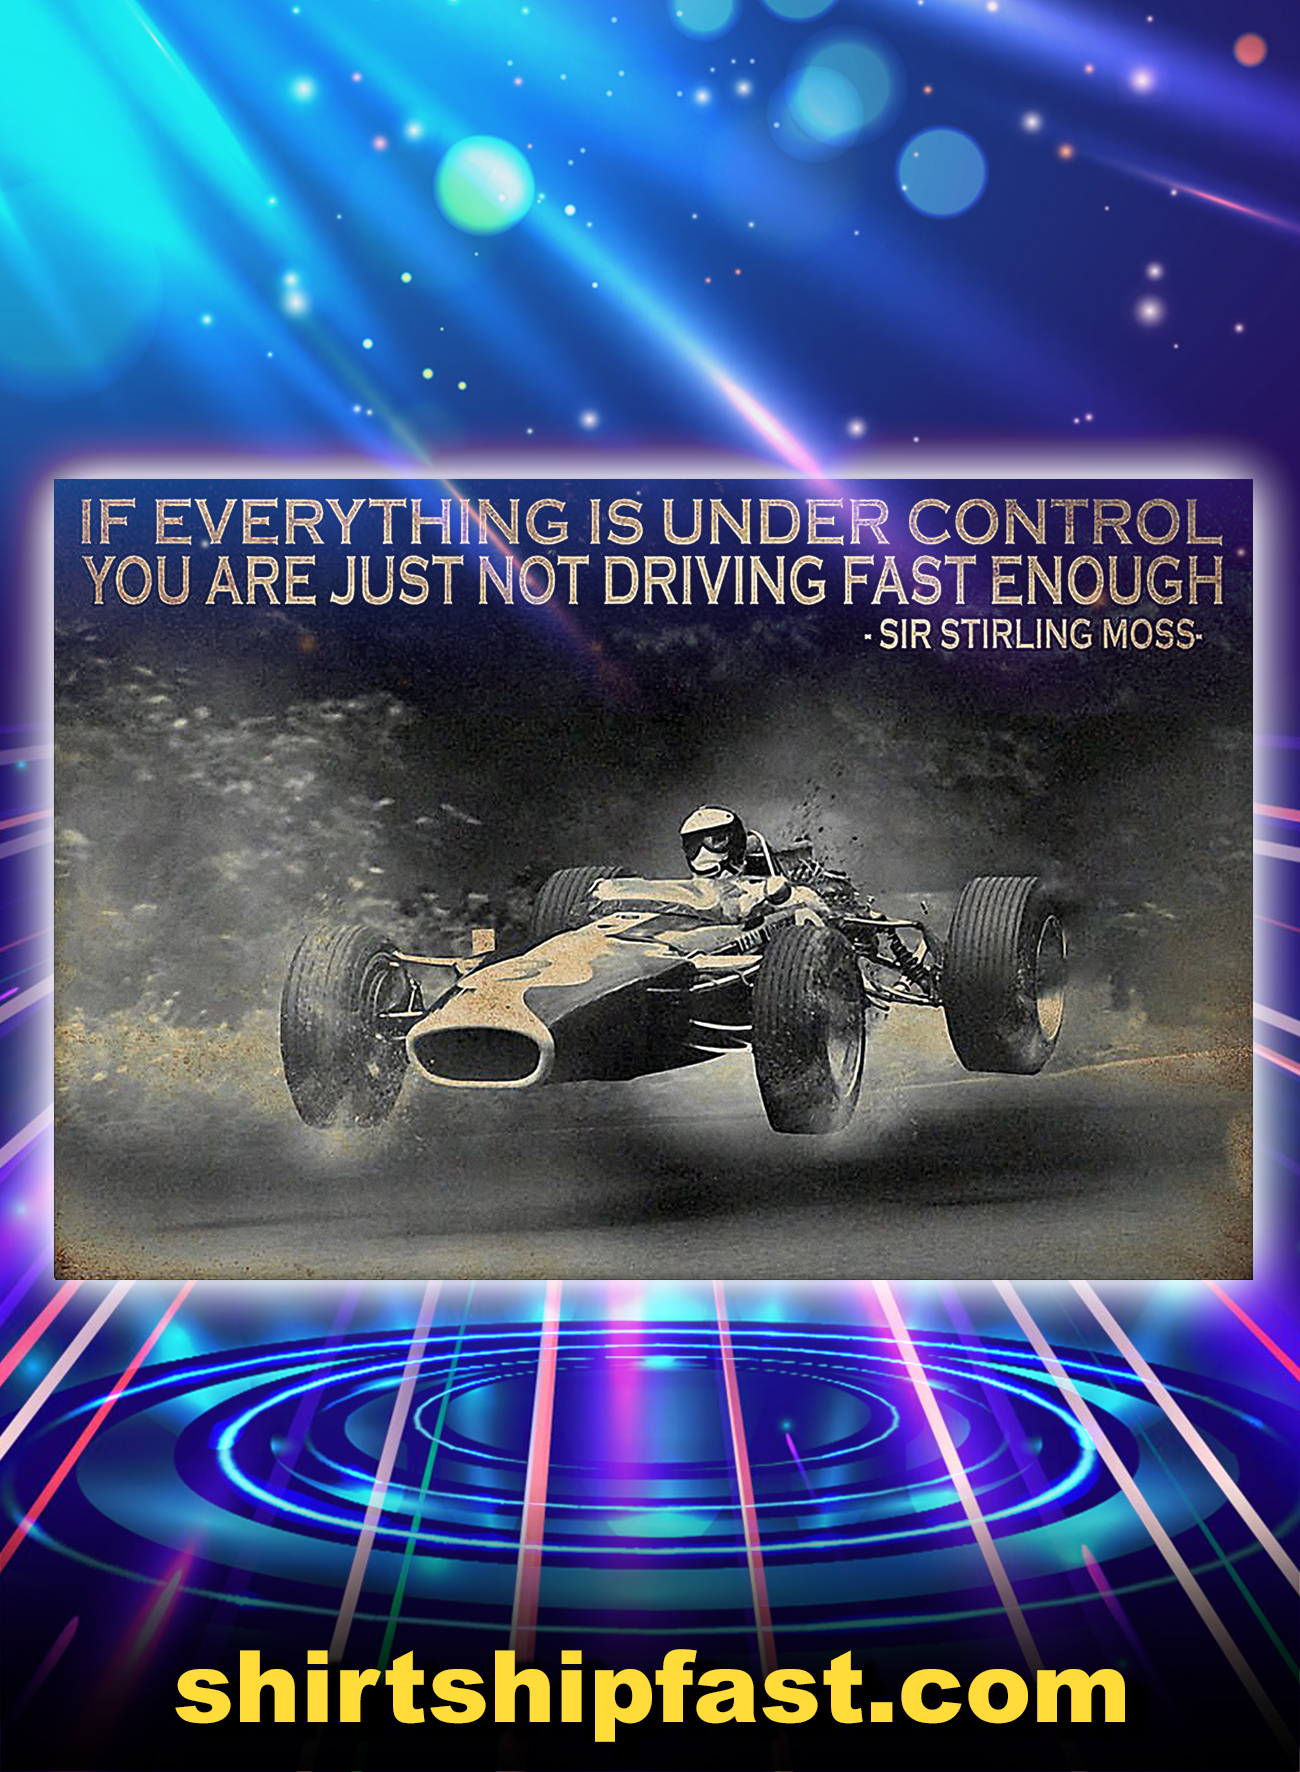 Motorsport racing if everything is under control poster